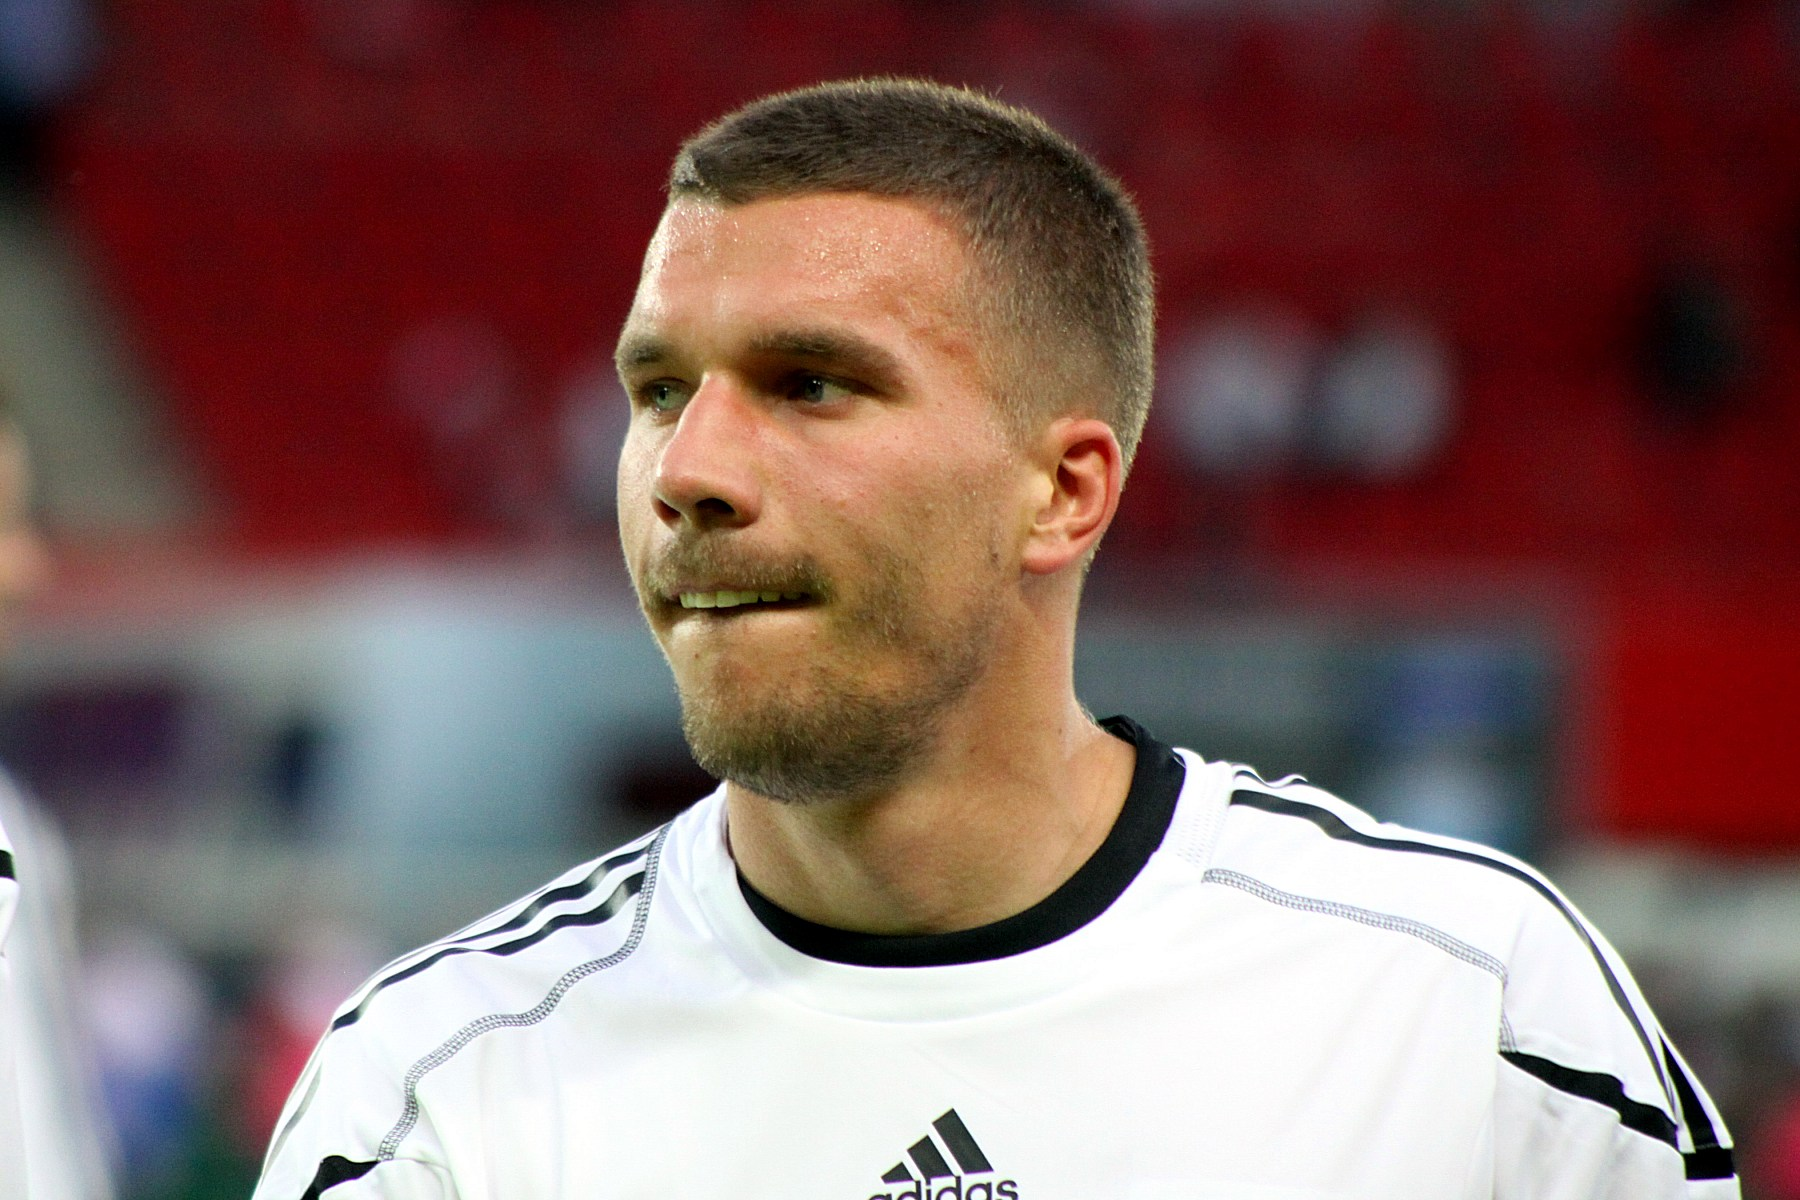 FileLukas Podolski Germany National Football Team 03